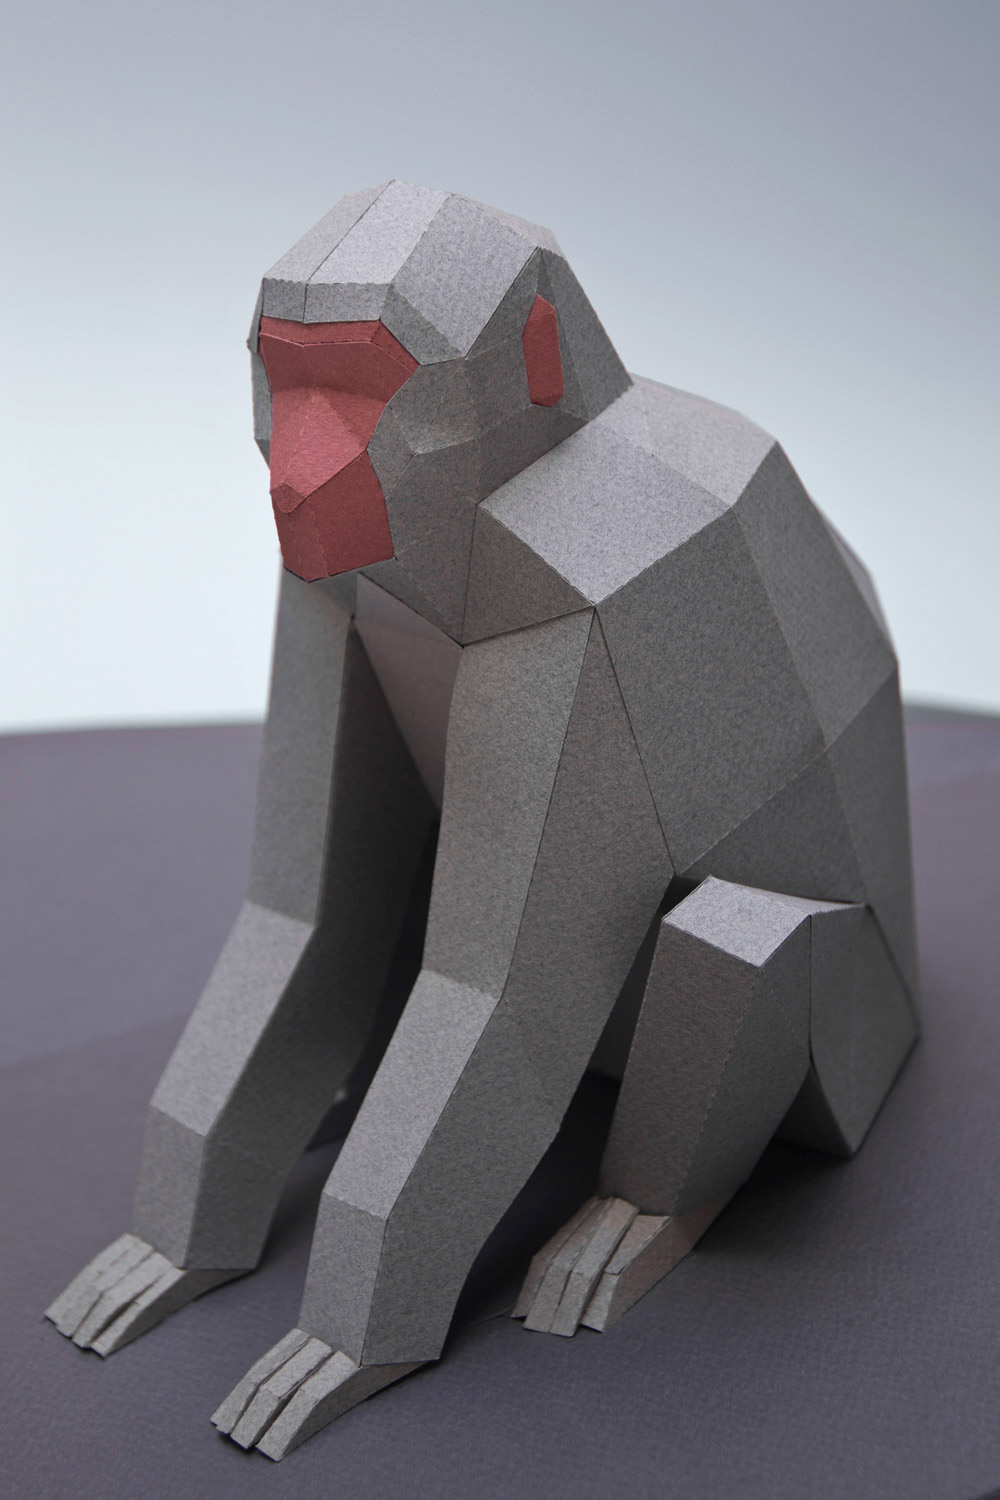 New geometric animals made out of paper by Guardabosques